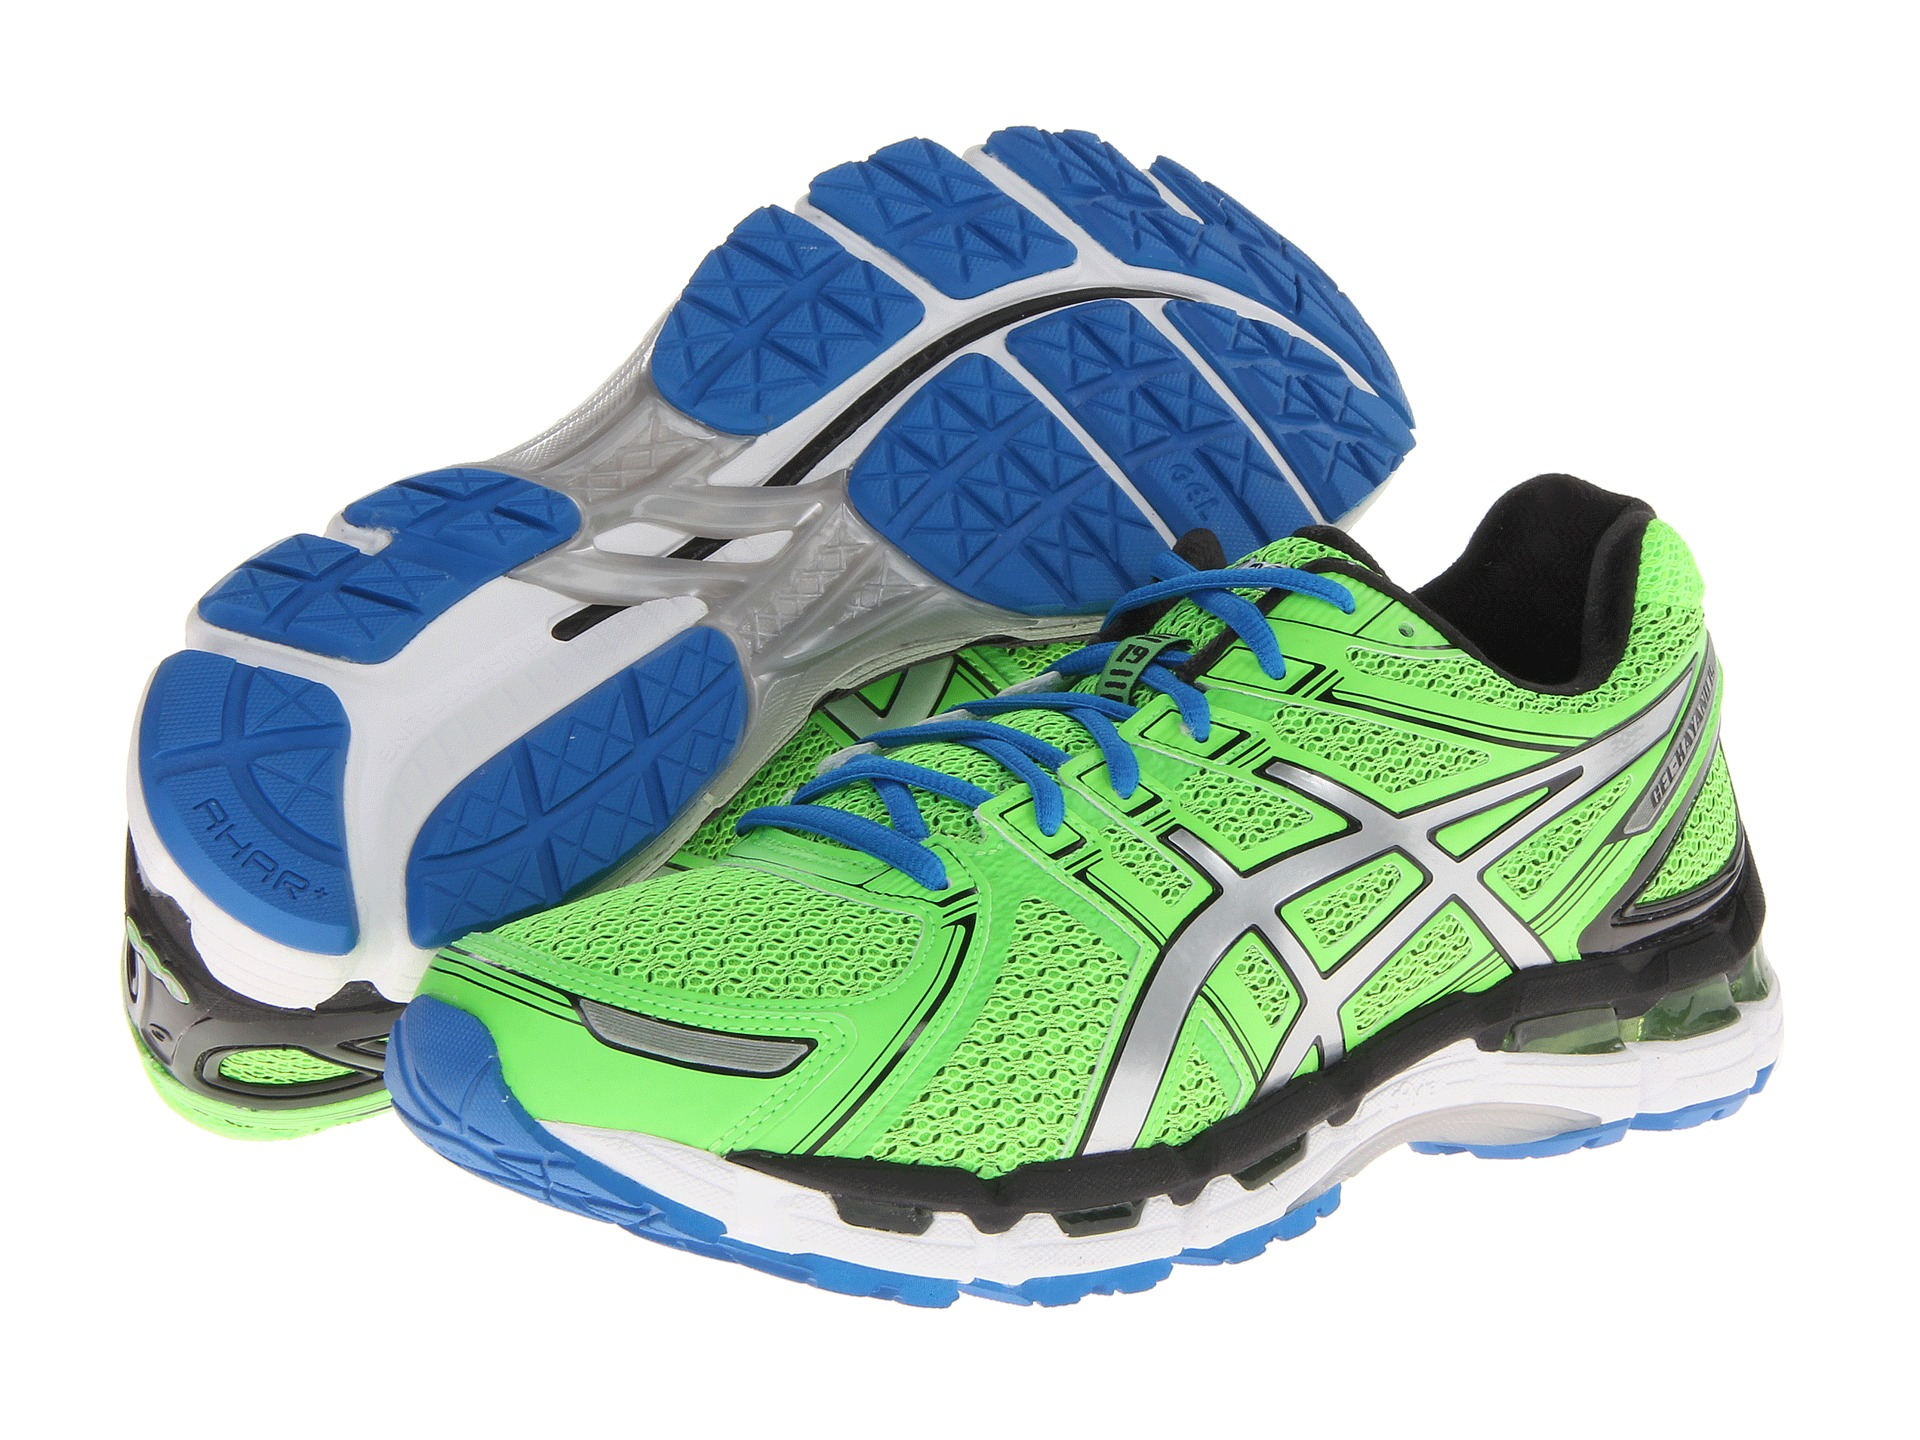 asics gel kayano 19 mens running shoes (green-lightning-sapphire)